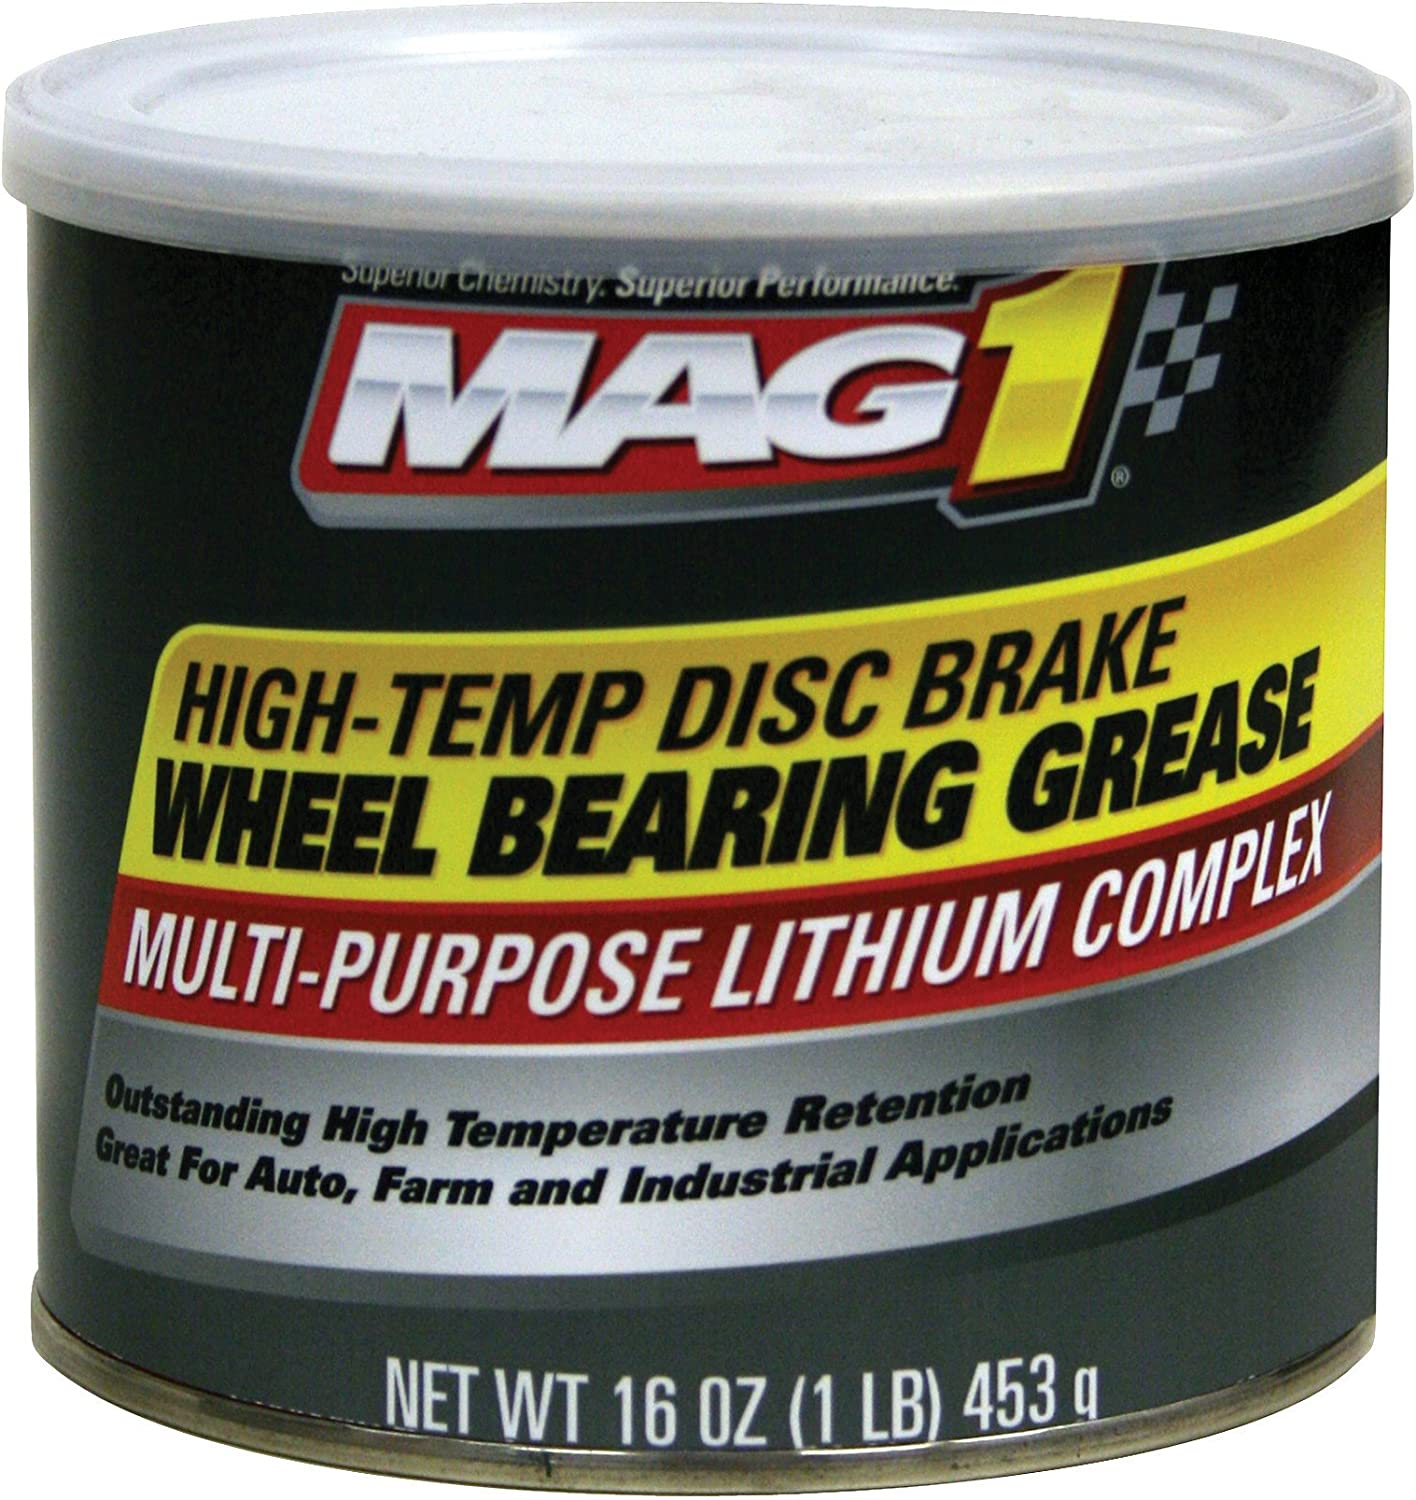 Mag 1 720 Red High-Temp Disc Brake Wheel Bearing Grease